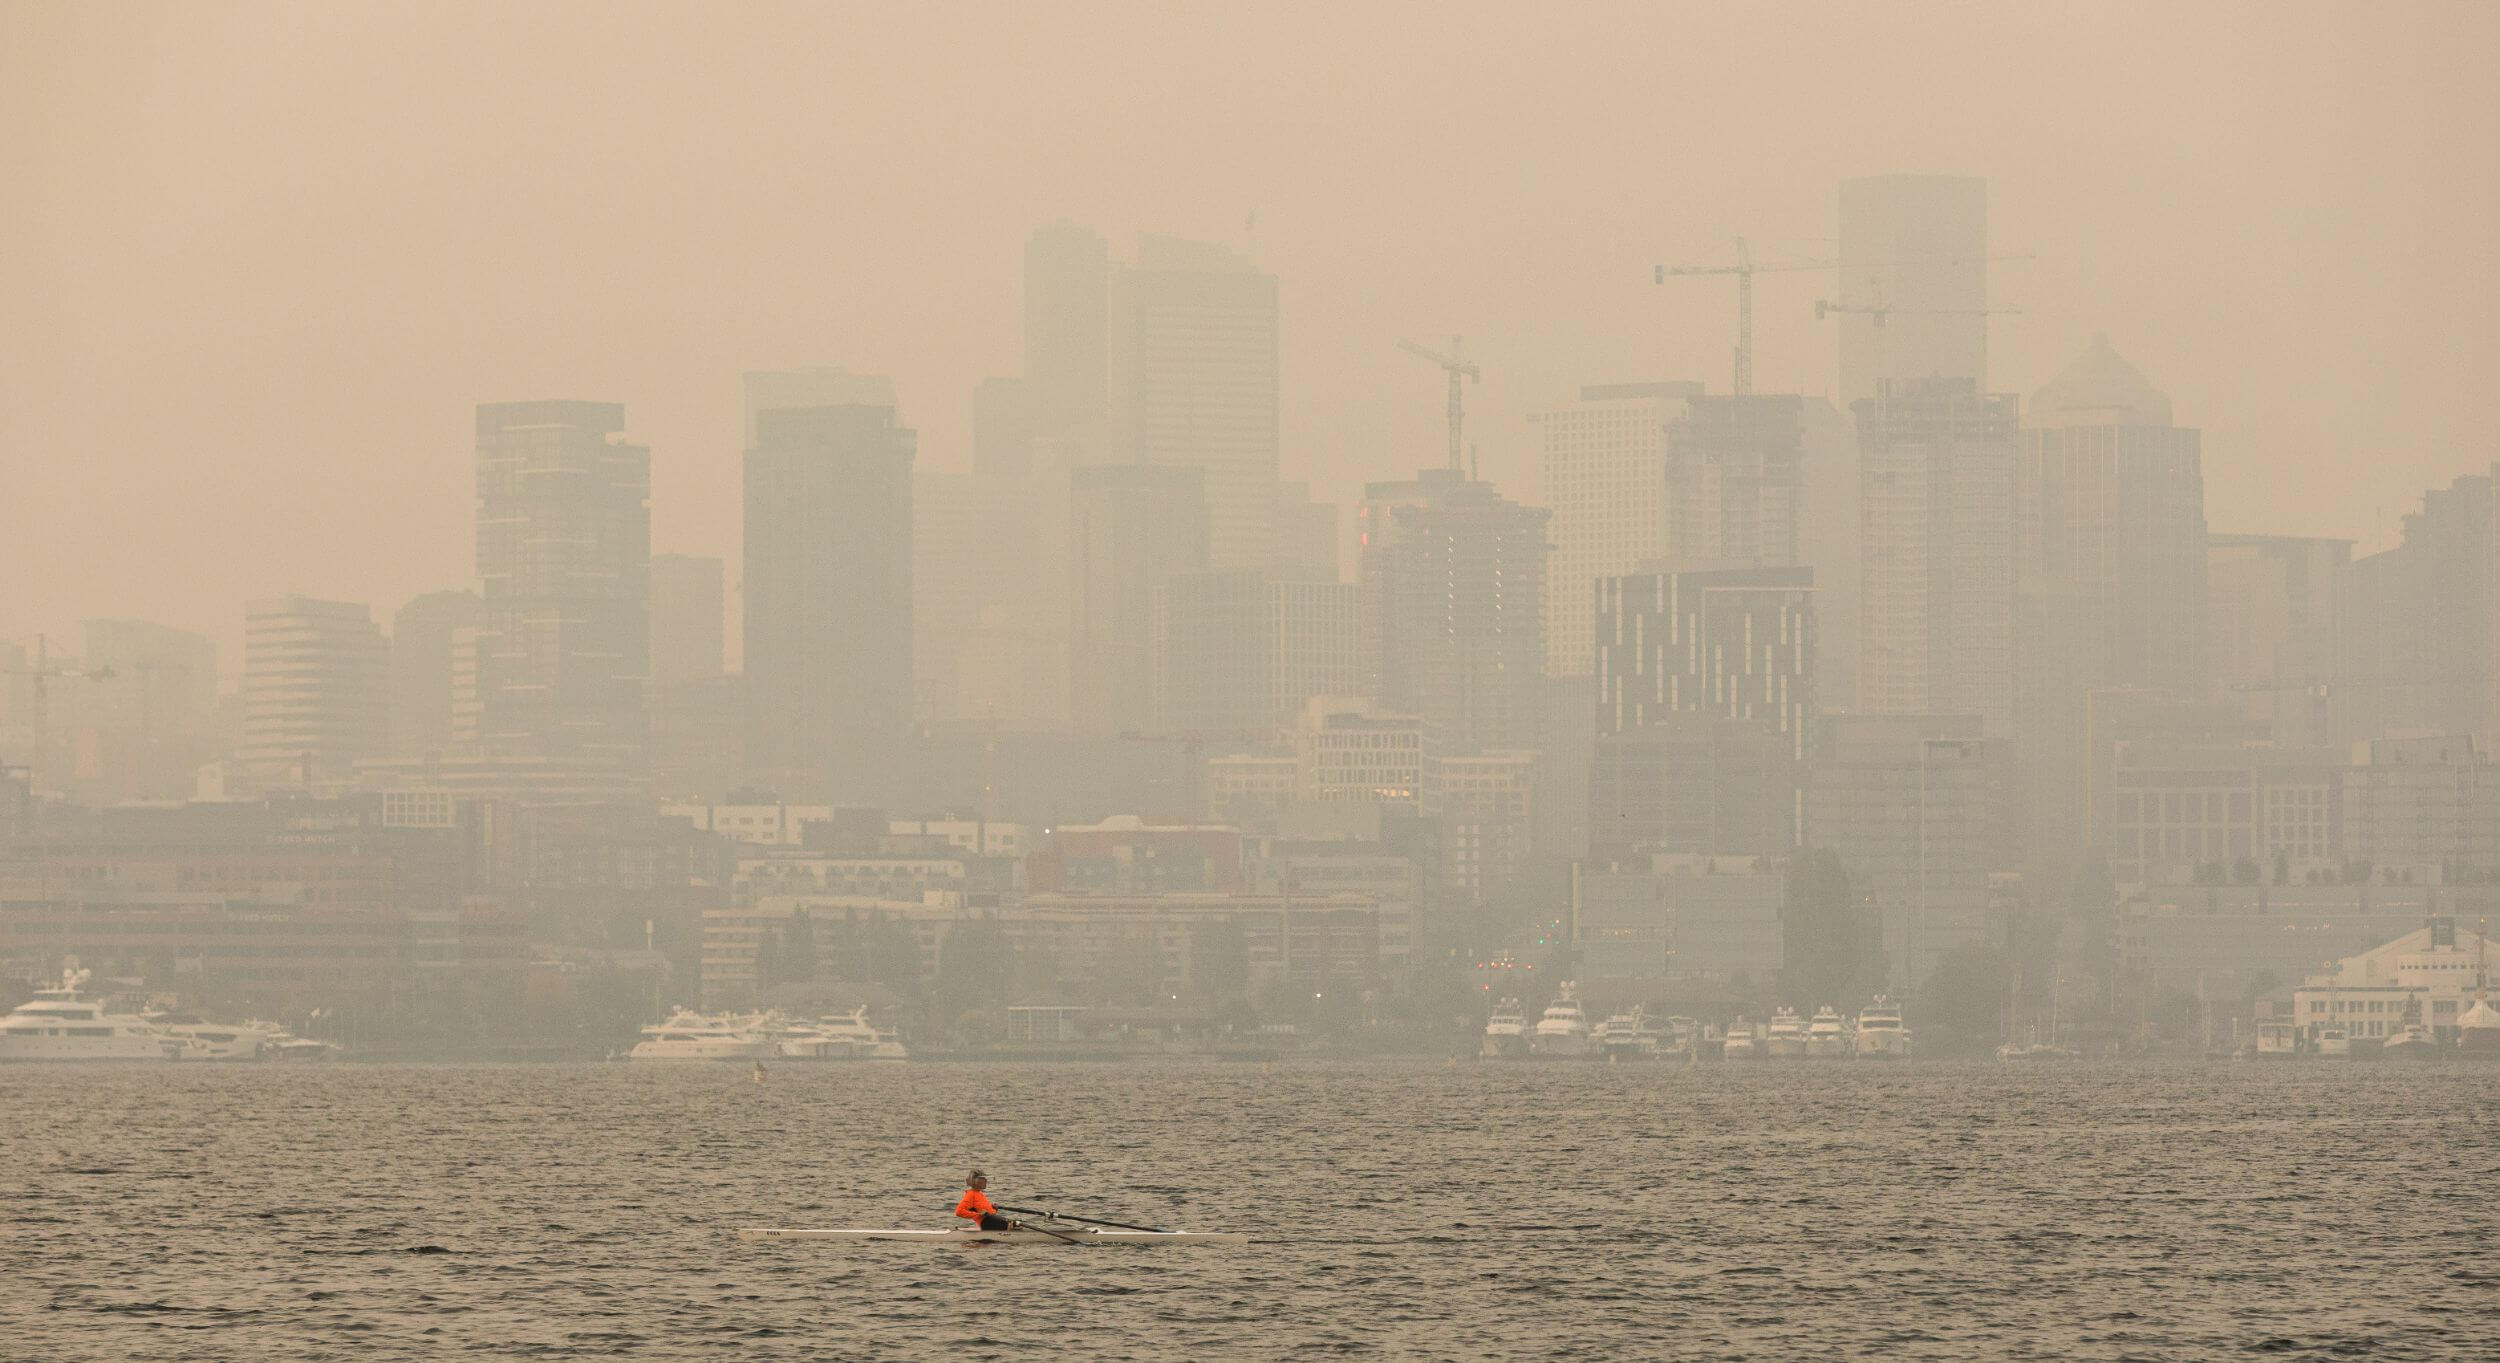 The Seattle skyline, heavily obscured by gray-orange smoke to the point where the buildings are barely visible. At the bottom, Lake Union, where a lone kayaker travels across in a bright orange shirt.